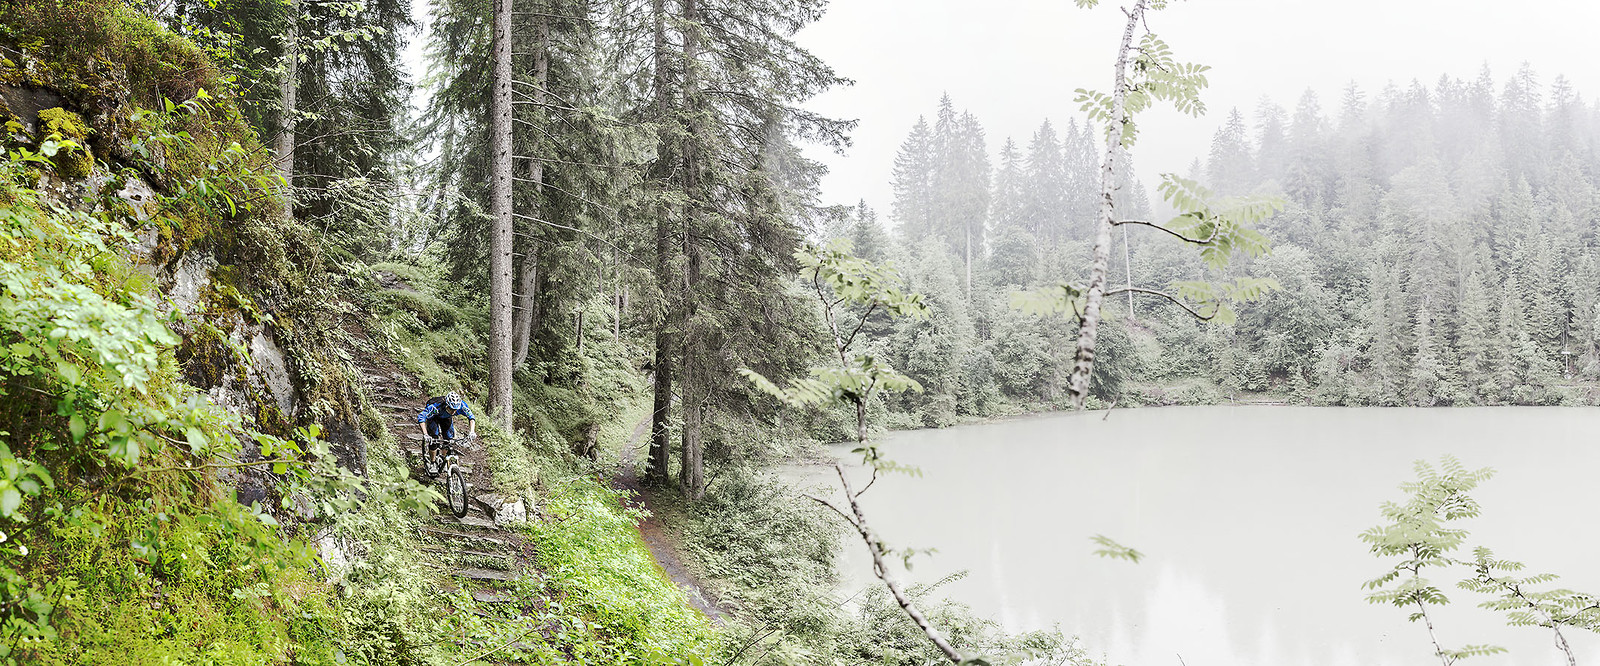 Ride to the Lake - Hannes Klausner - Mountain Biking Pictures - Vital MTB